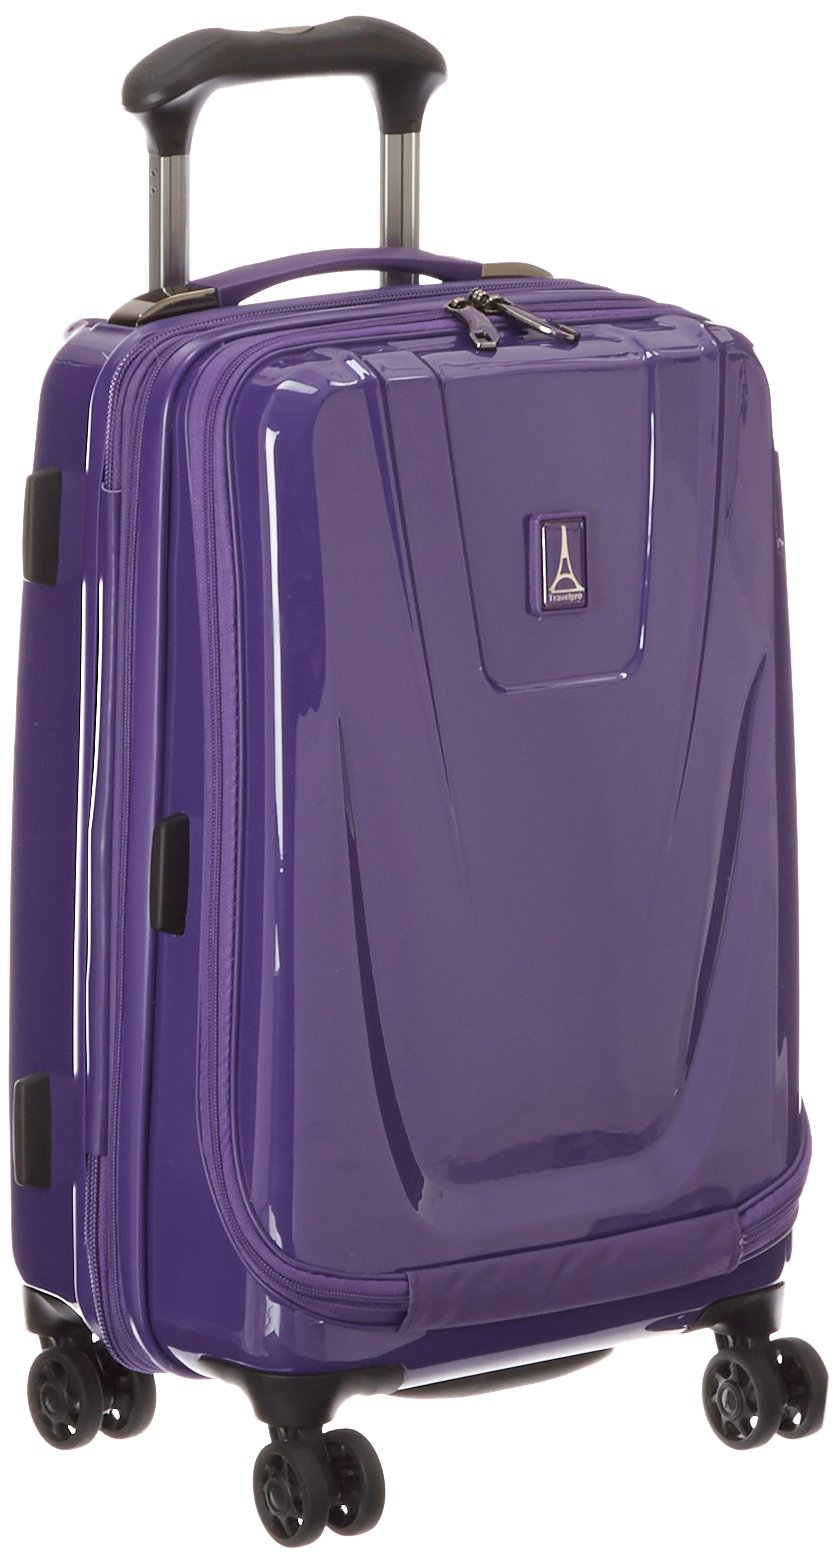 Travelpro Maxlite 20 Inch Business Plus Hardside, Grape, One Size by Travelpro (Image #1)